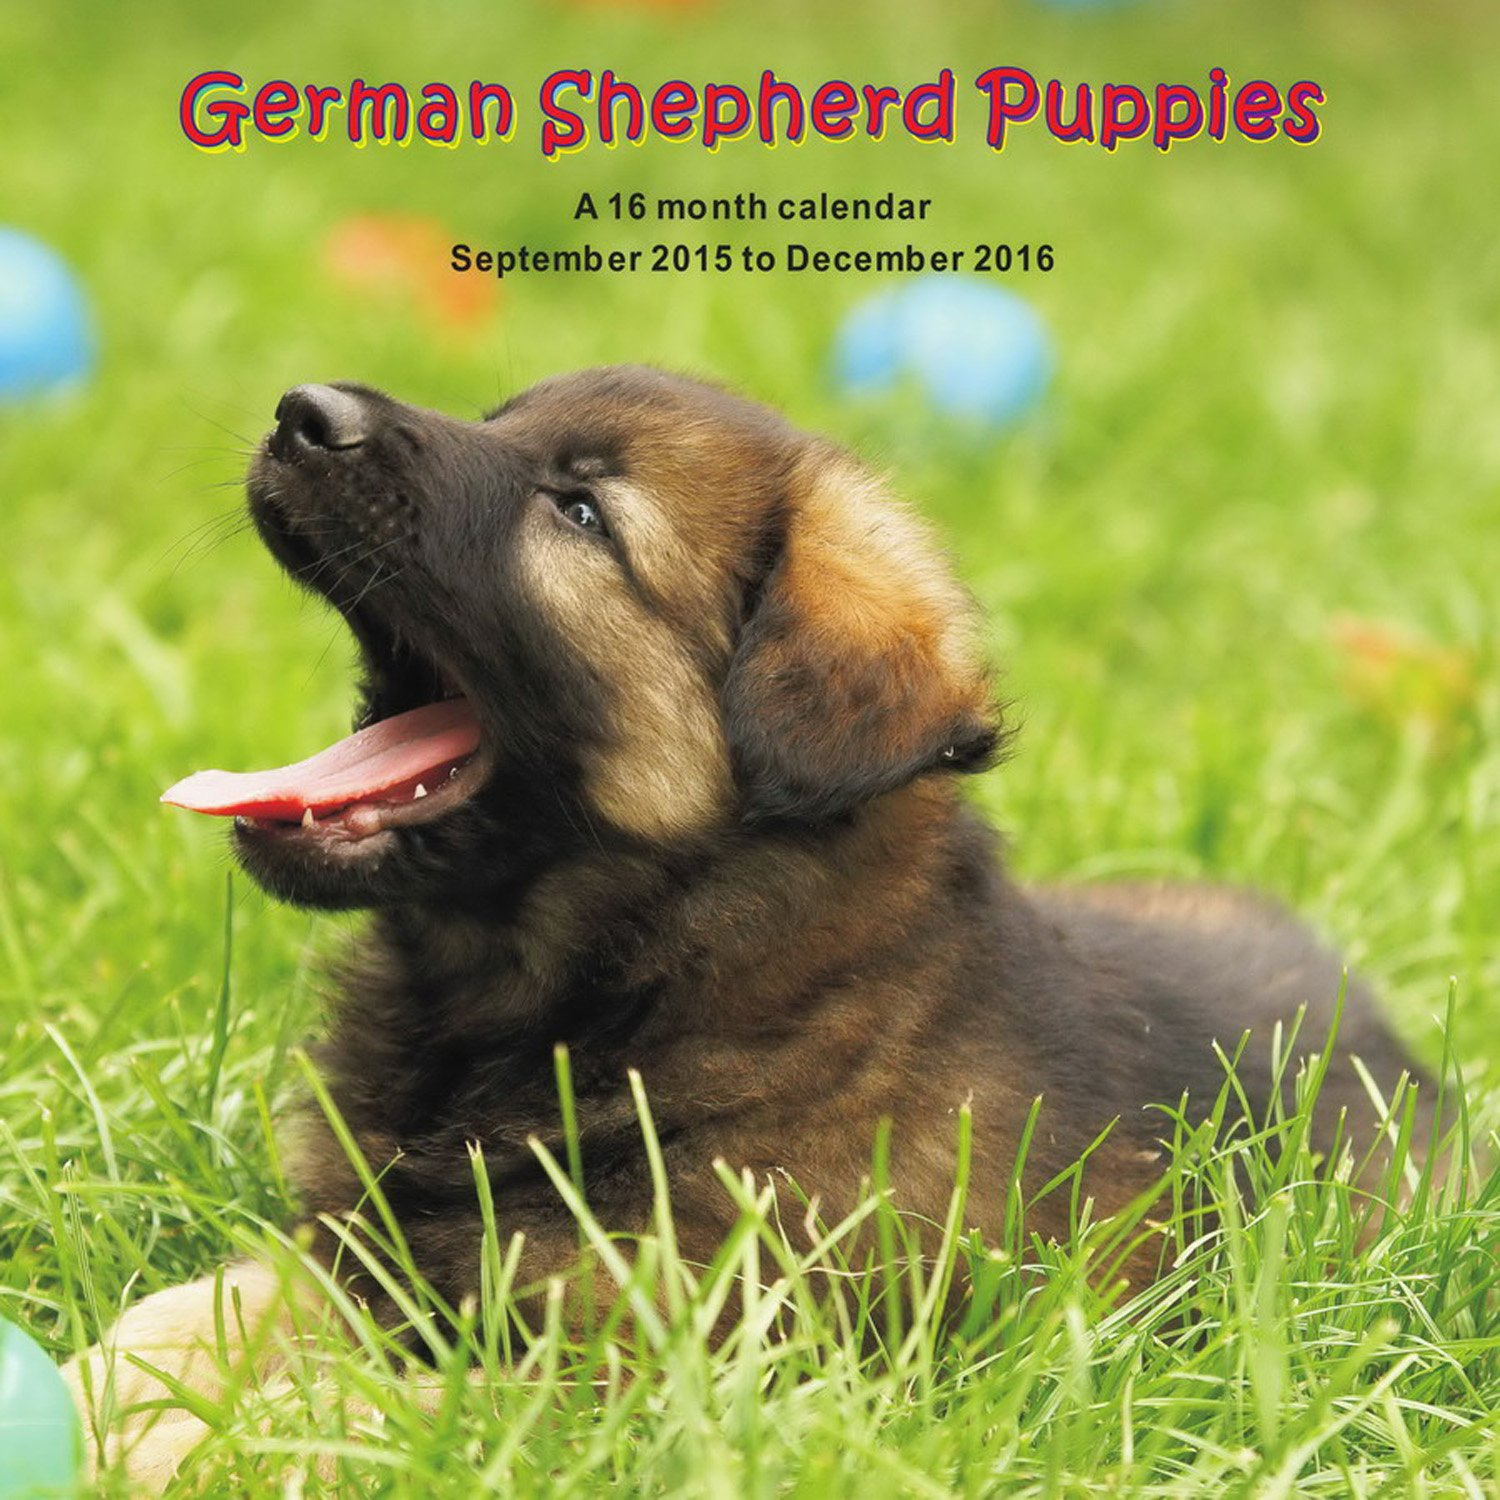 Download German Shepherd Puppies Calendar - 2016 Wall calendars - Dog Calendars - Monthly Wall Calendar by Magnum pdf